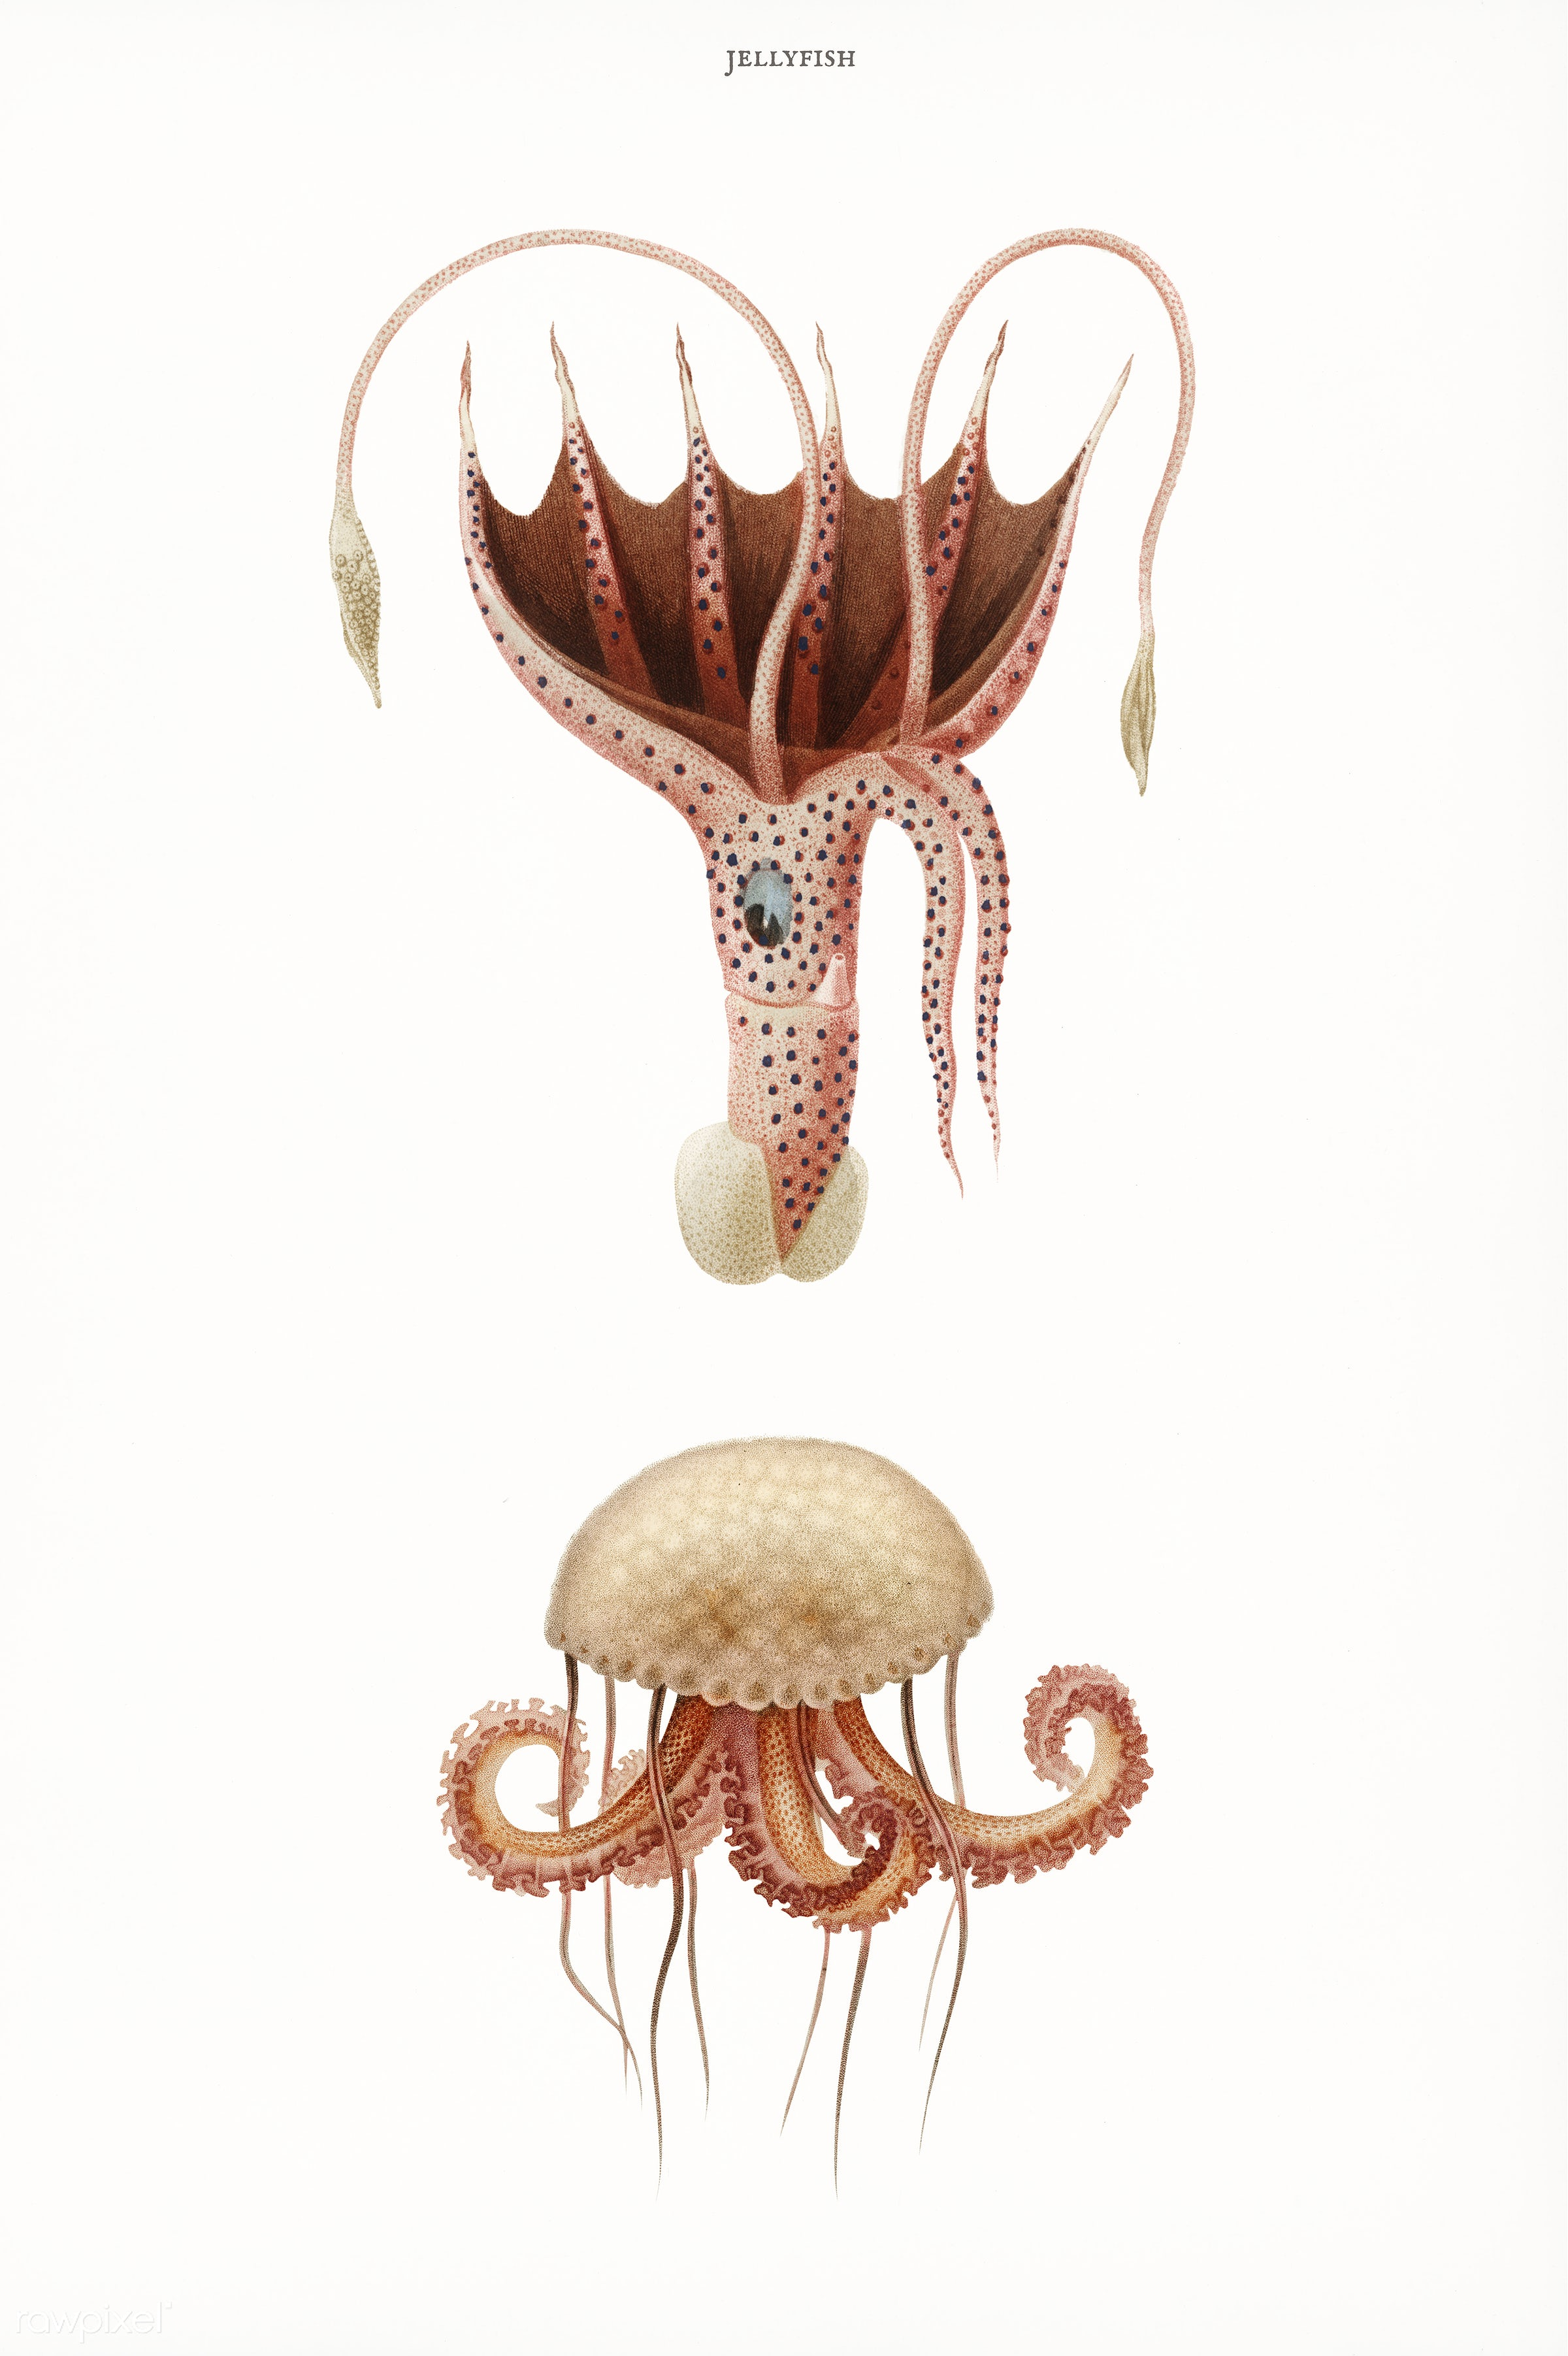 Mauve stinger jellyfish and Squid (Histioteuthis bonnellii) illustrated by Charles Dessalines D' Orbigny (1806-1876)....